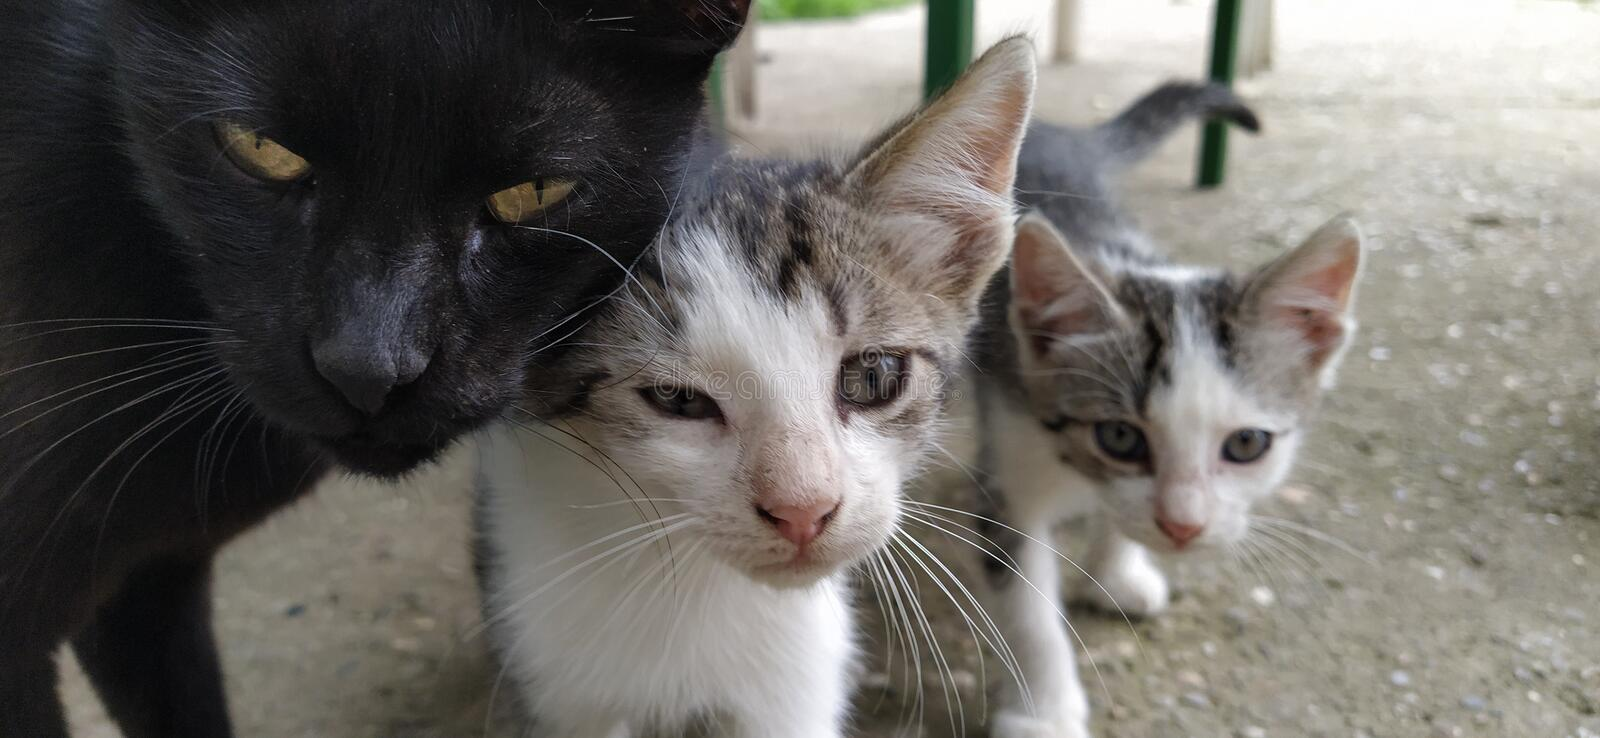 Family of cats. Black mother cat and two white-gray striped kittens. Animals on the street. The cat and kittens caress and rub. Their heads against each other royalty free stock images